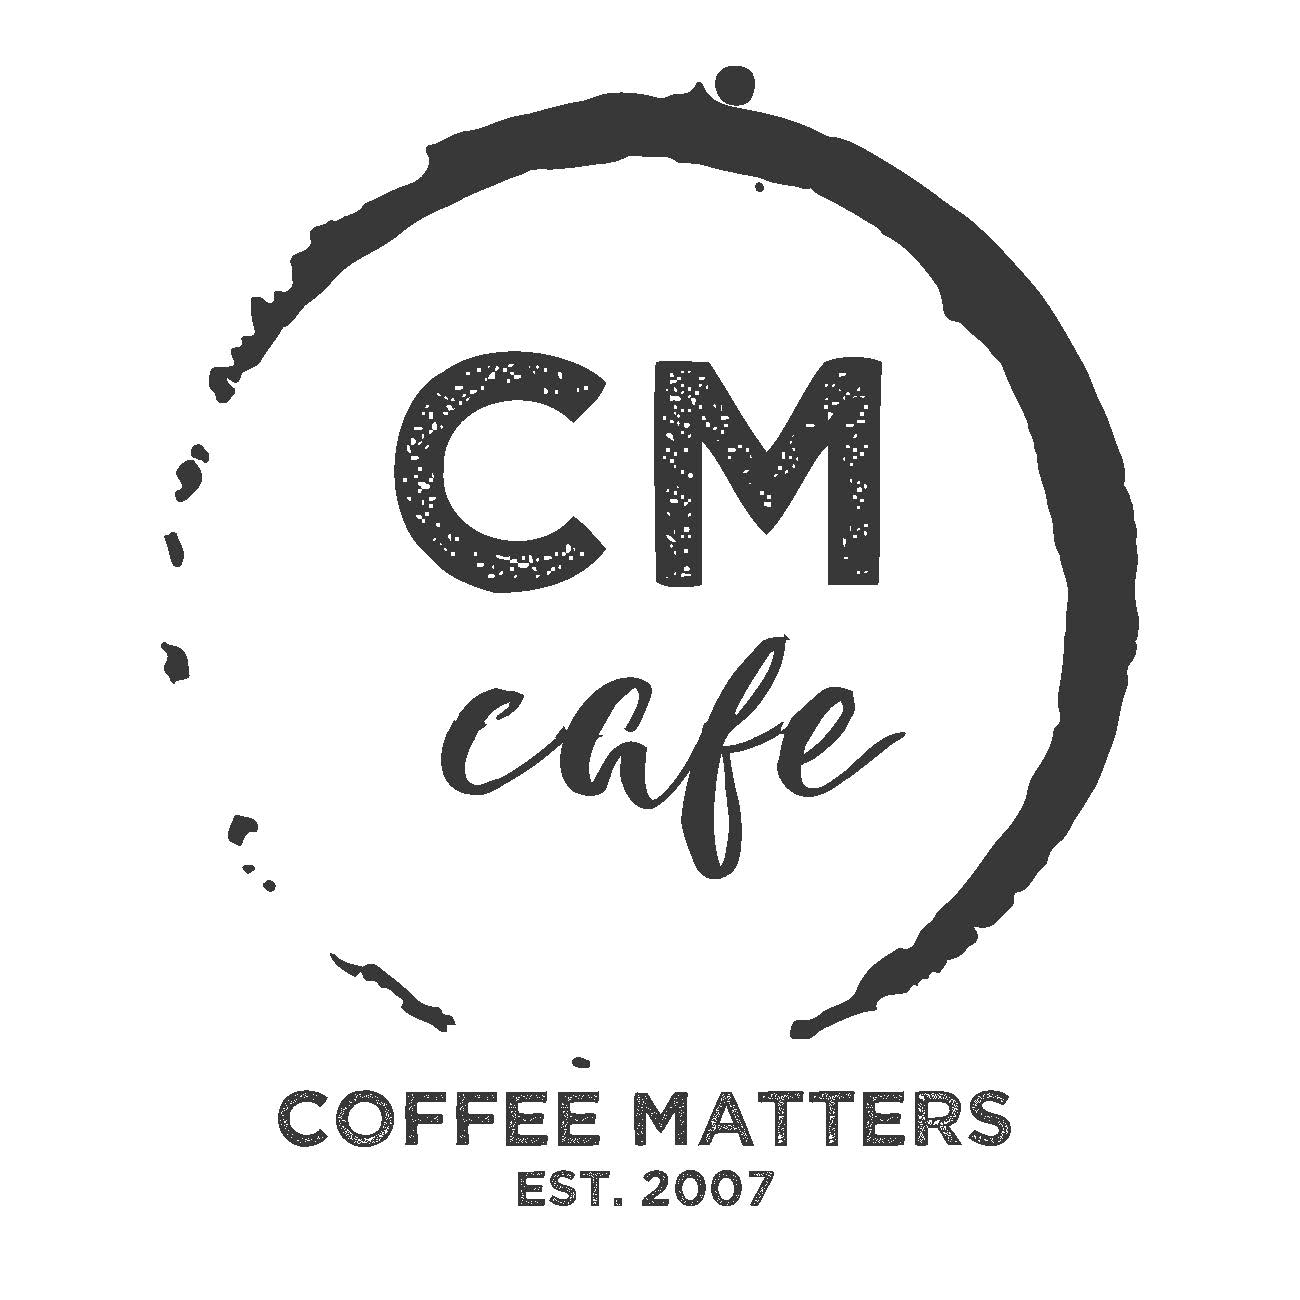 Coffee Matters logo